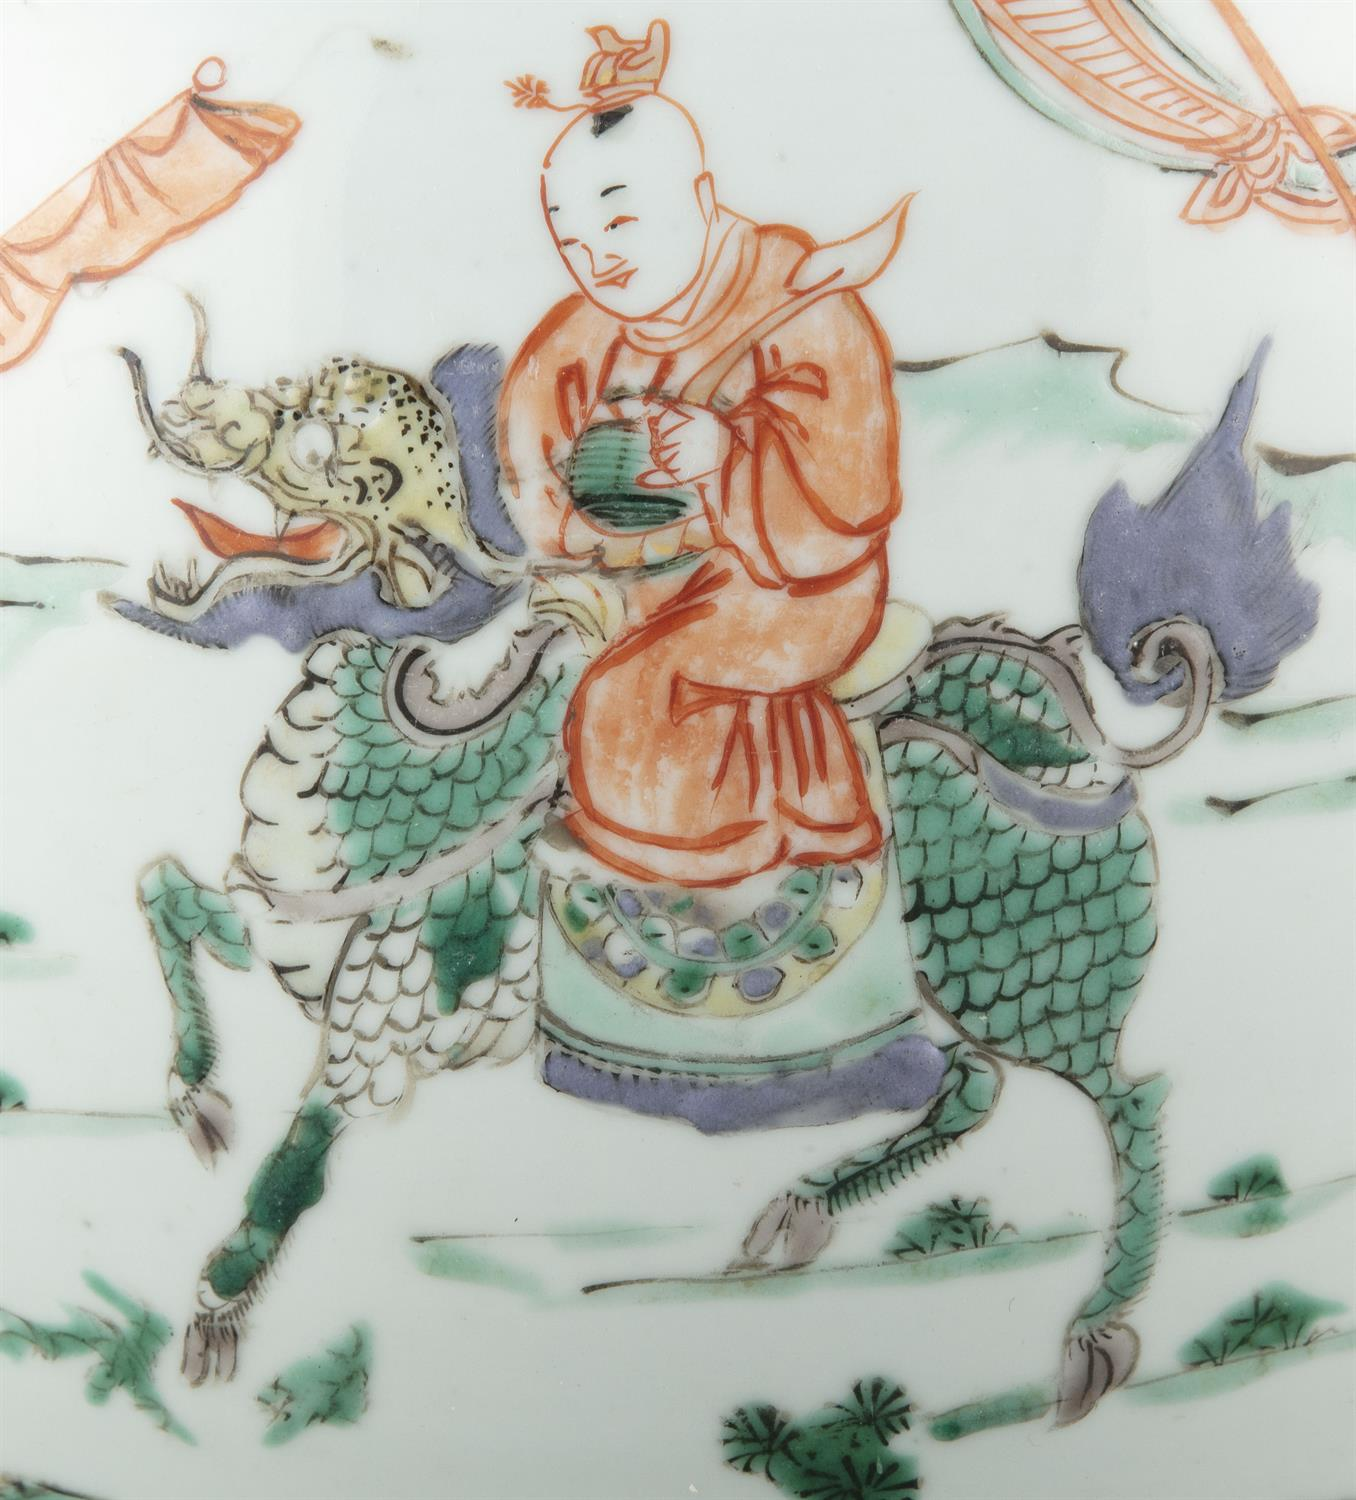 A FAMILLE VERTE 'BOY AND QILIN' PORCELAIN GINGER JAR China, Qing Dynasty, Kangxi period Adorned in - Image 16 of 20